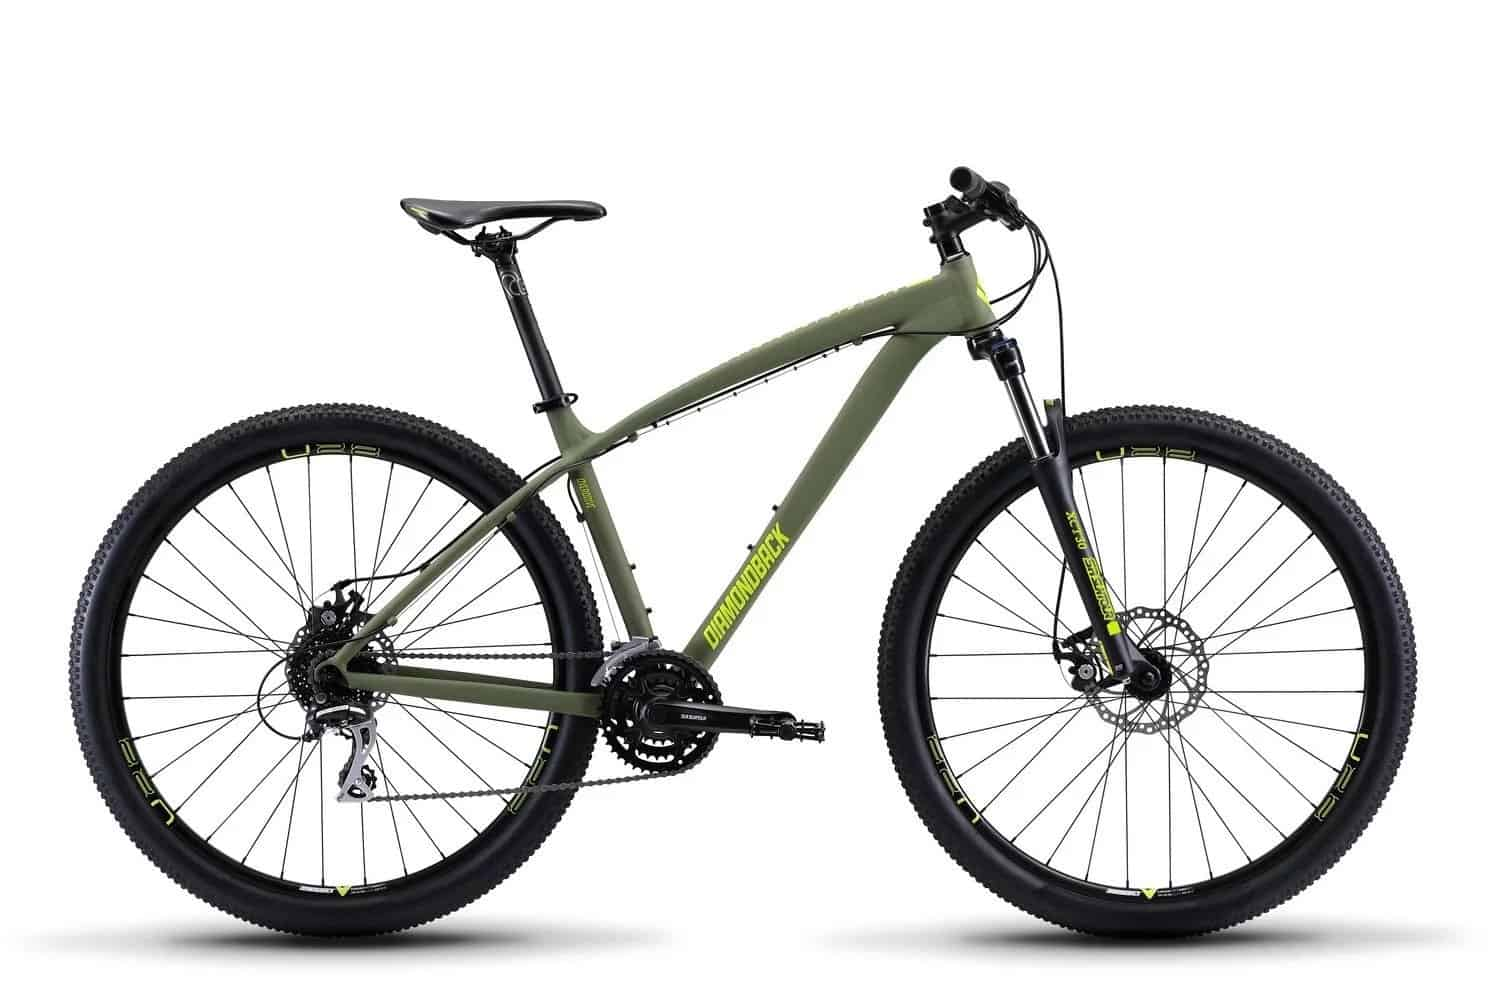 Diamondback Bicycles Overdrive 27.5 Hardtail Mountain Bike